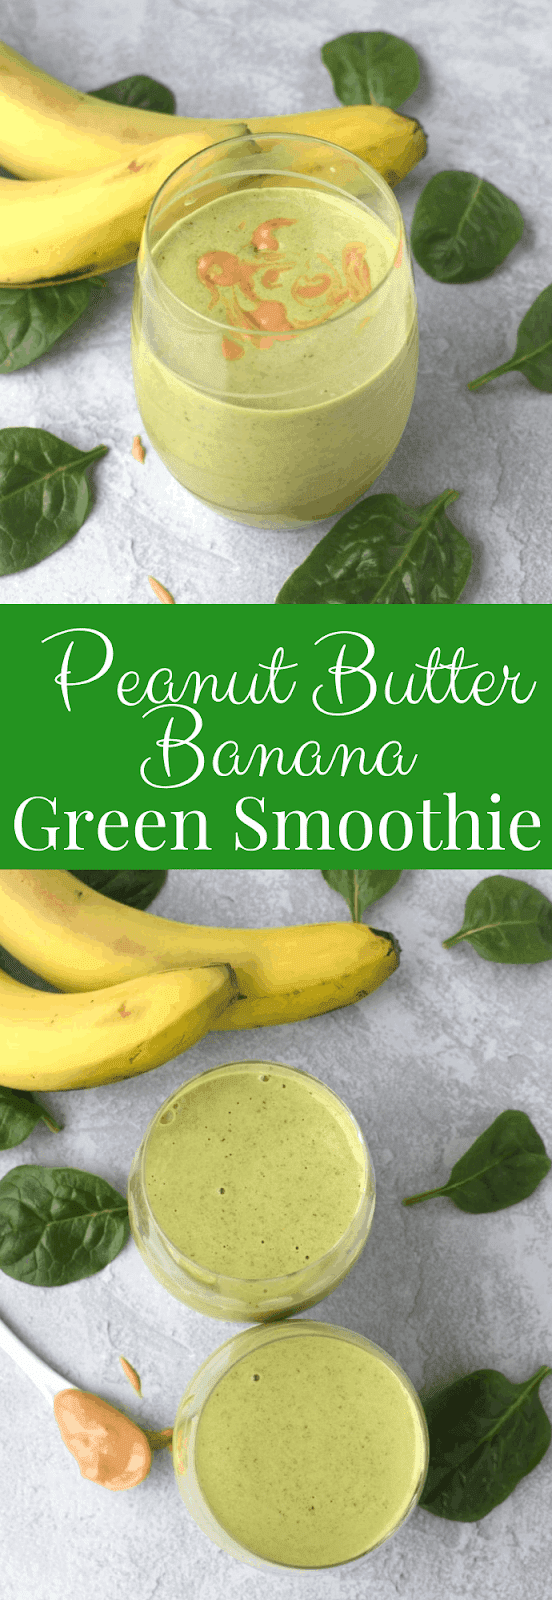 Peanut Butter Banana Green Smoothie recipe